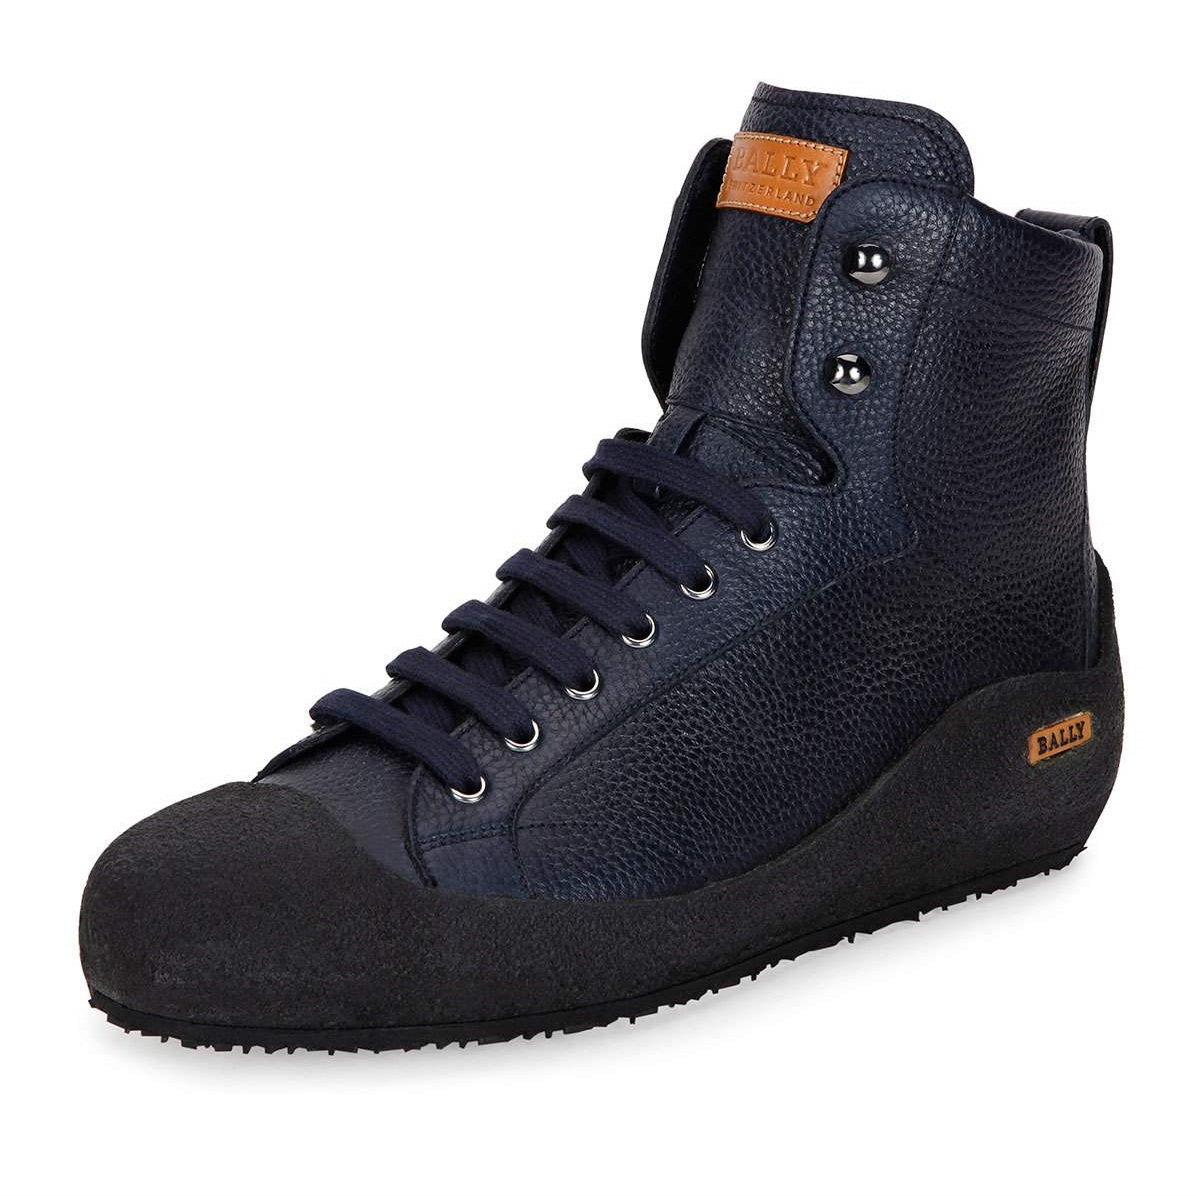 Bally Ellon Shearling-Lined Blue Leather Mens Snow Boots